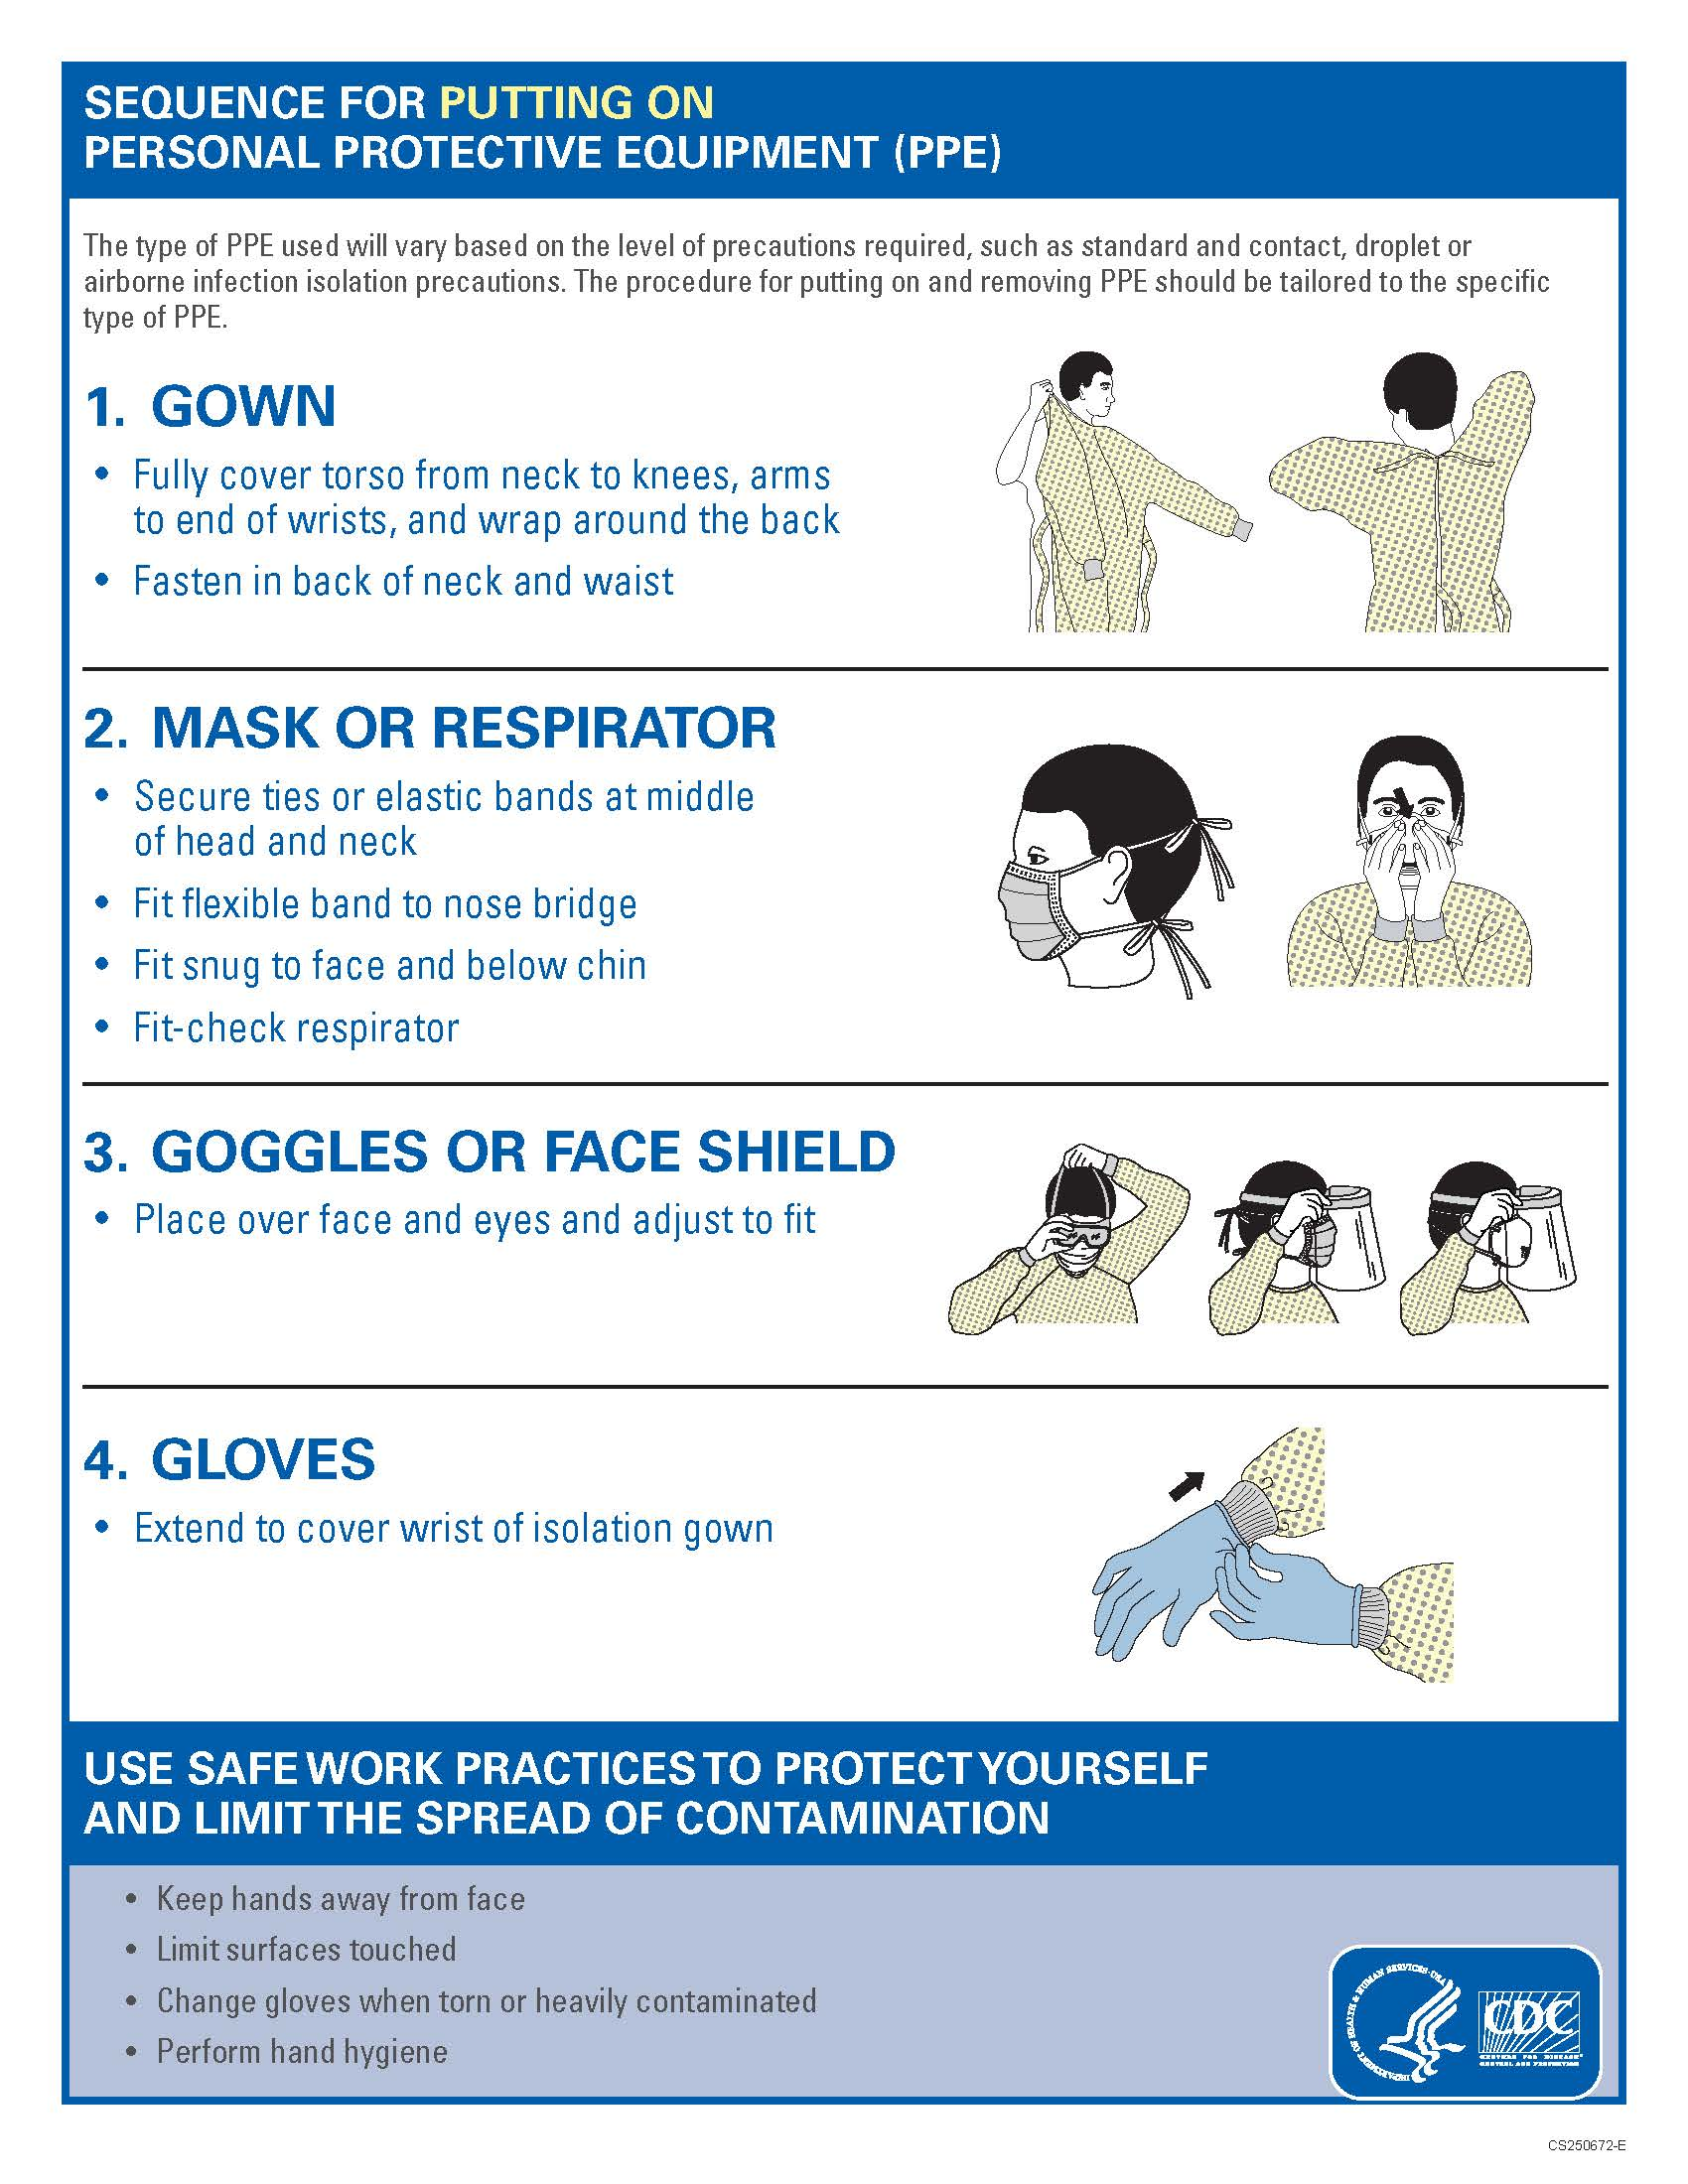 sequence-for-putting-on-personal-protective-equipment-ppe-page-1.original.jpg